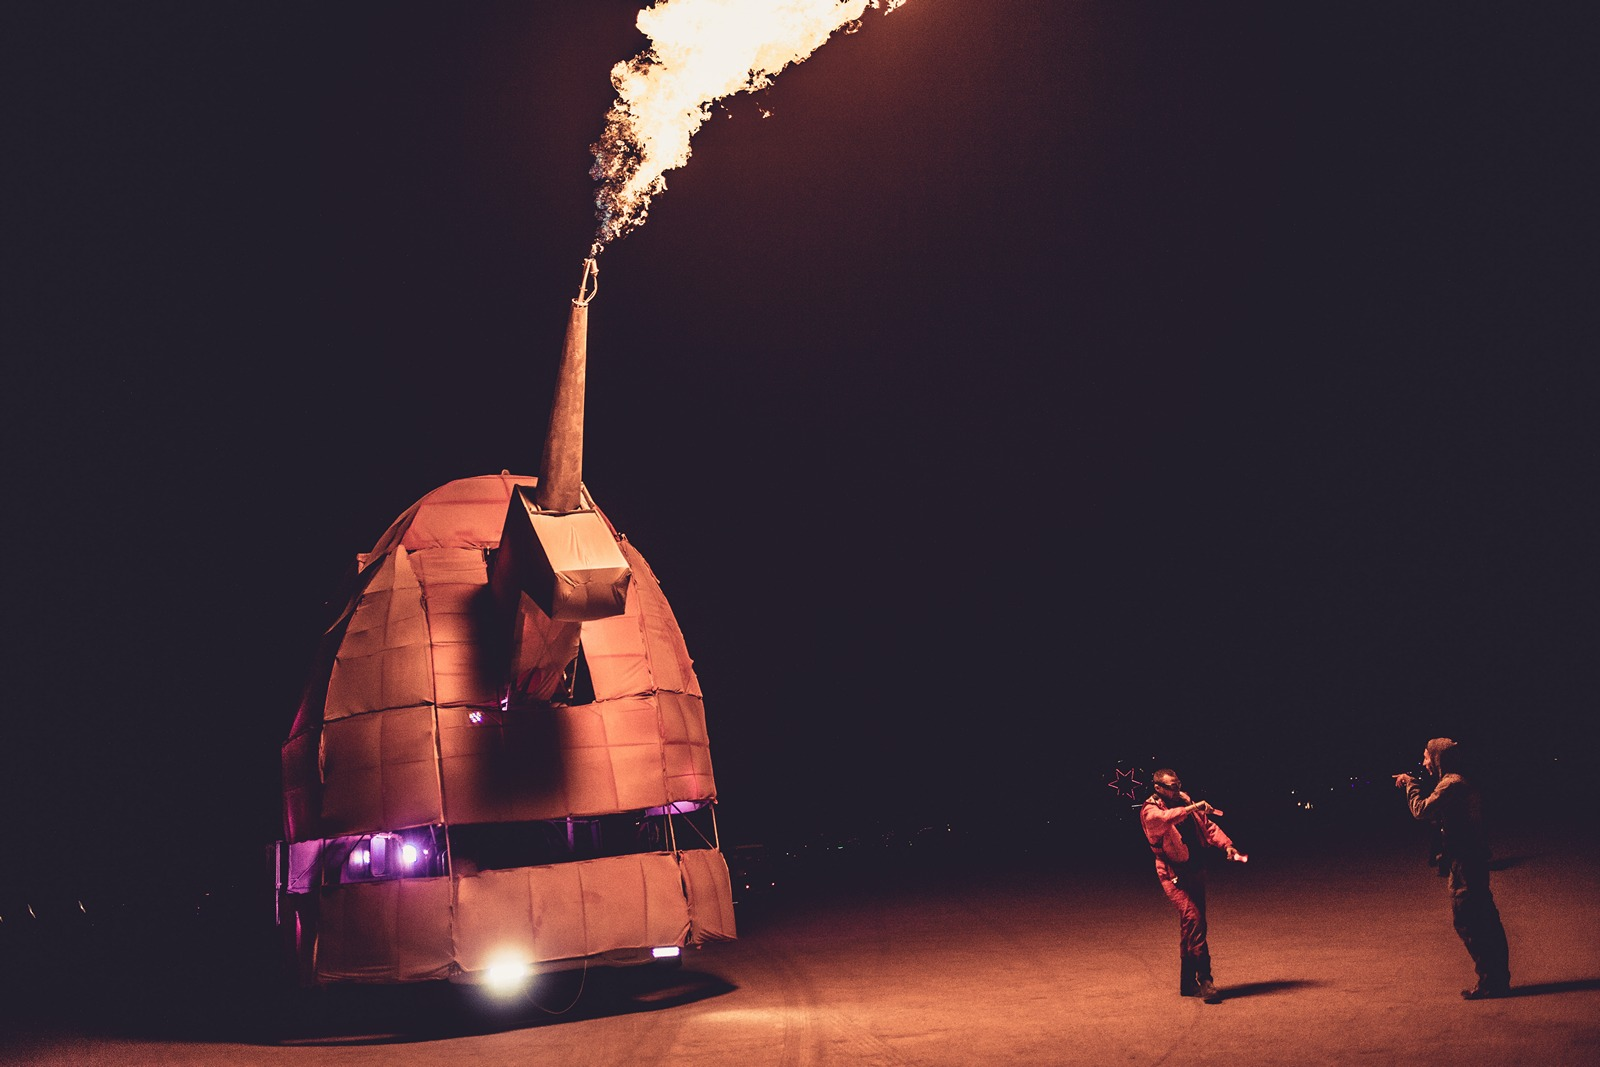 Burning Man - Blowing fire